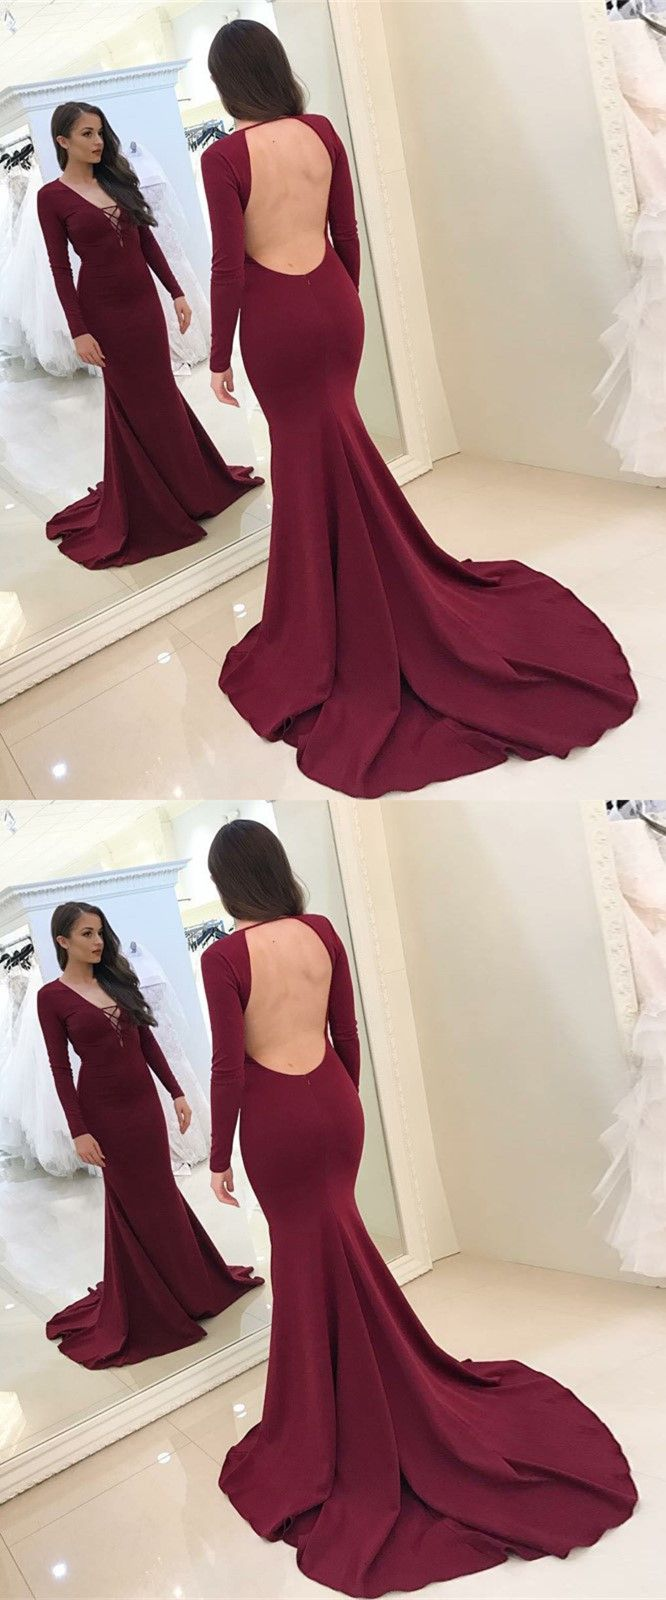 a49264f6e6 Mermaid Deep V-Neck Long Sleeves Backless Sweep Train Burgundy Prom Dress  in 2018